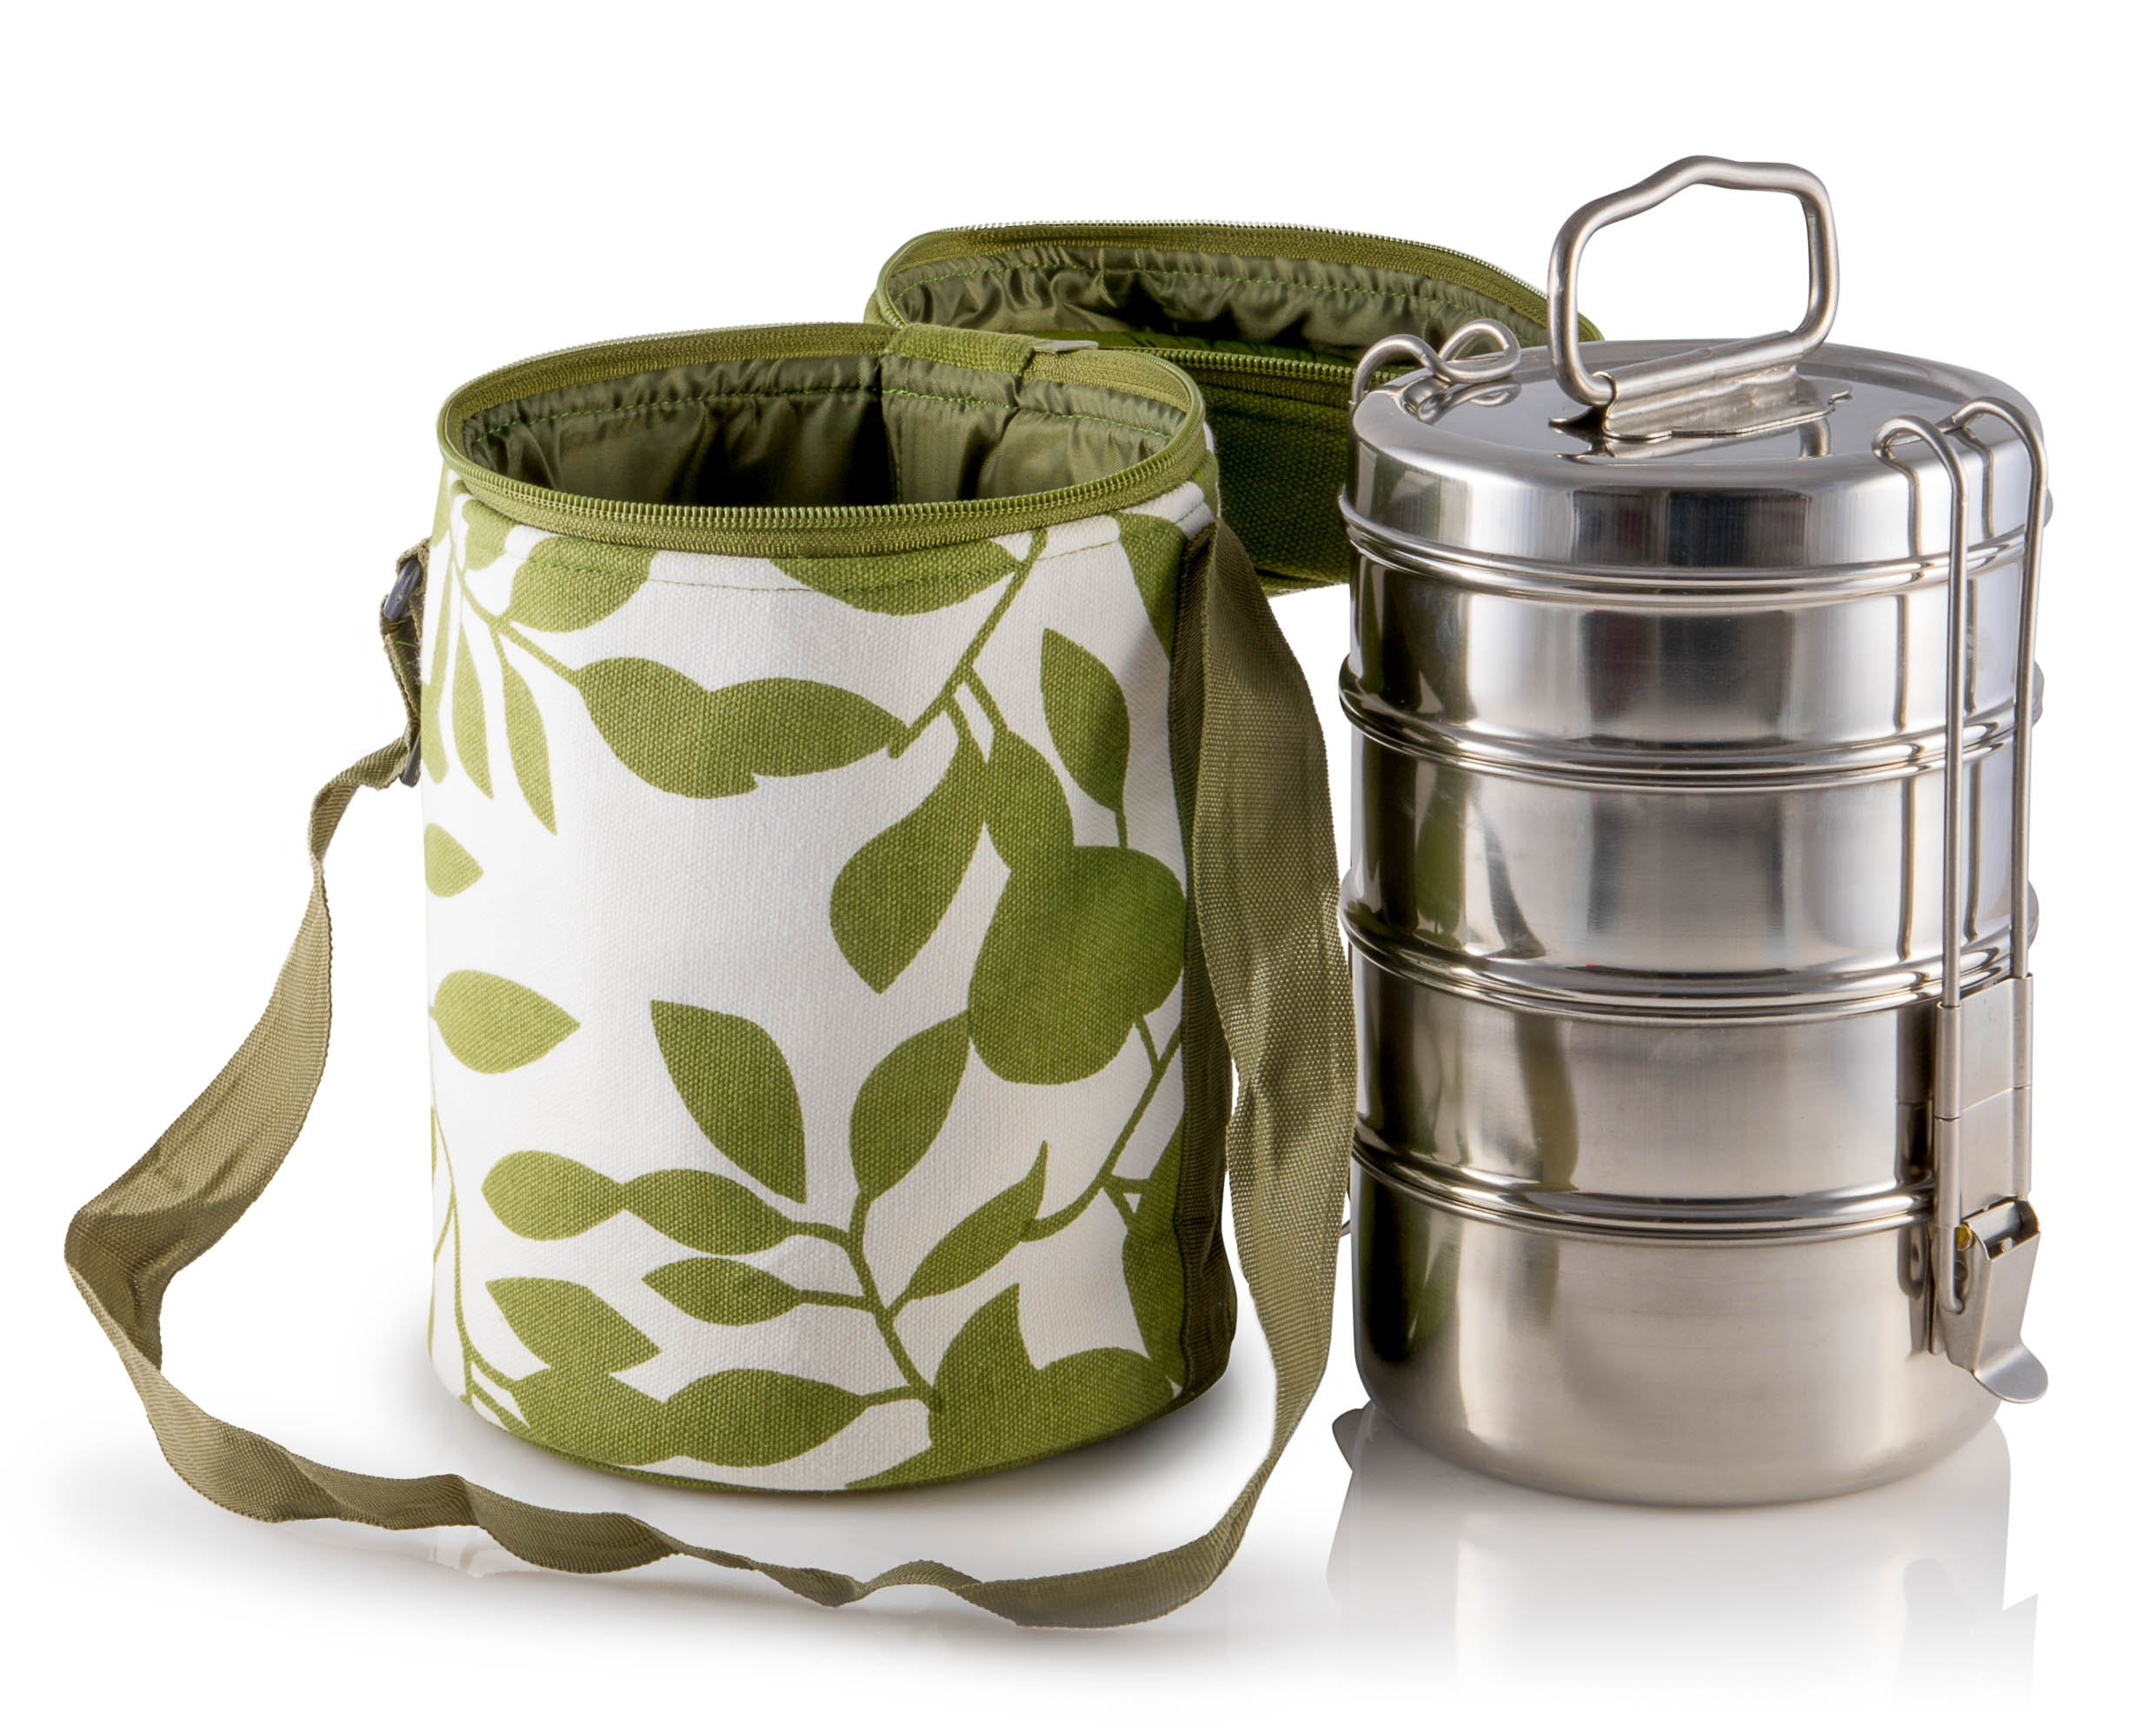 4 Tier Large Tiffin With Thermally Insulated Green Leafy Patterned Tiffin Bag Carrier by Indian-Tiffin